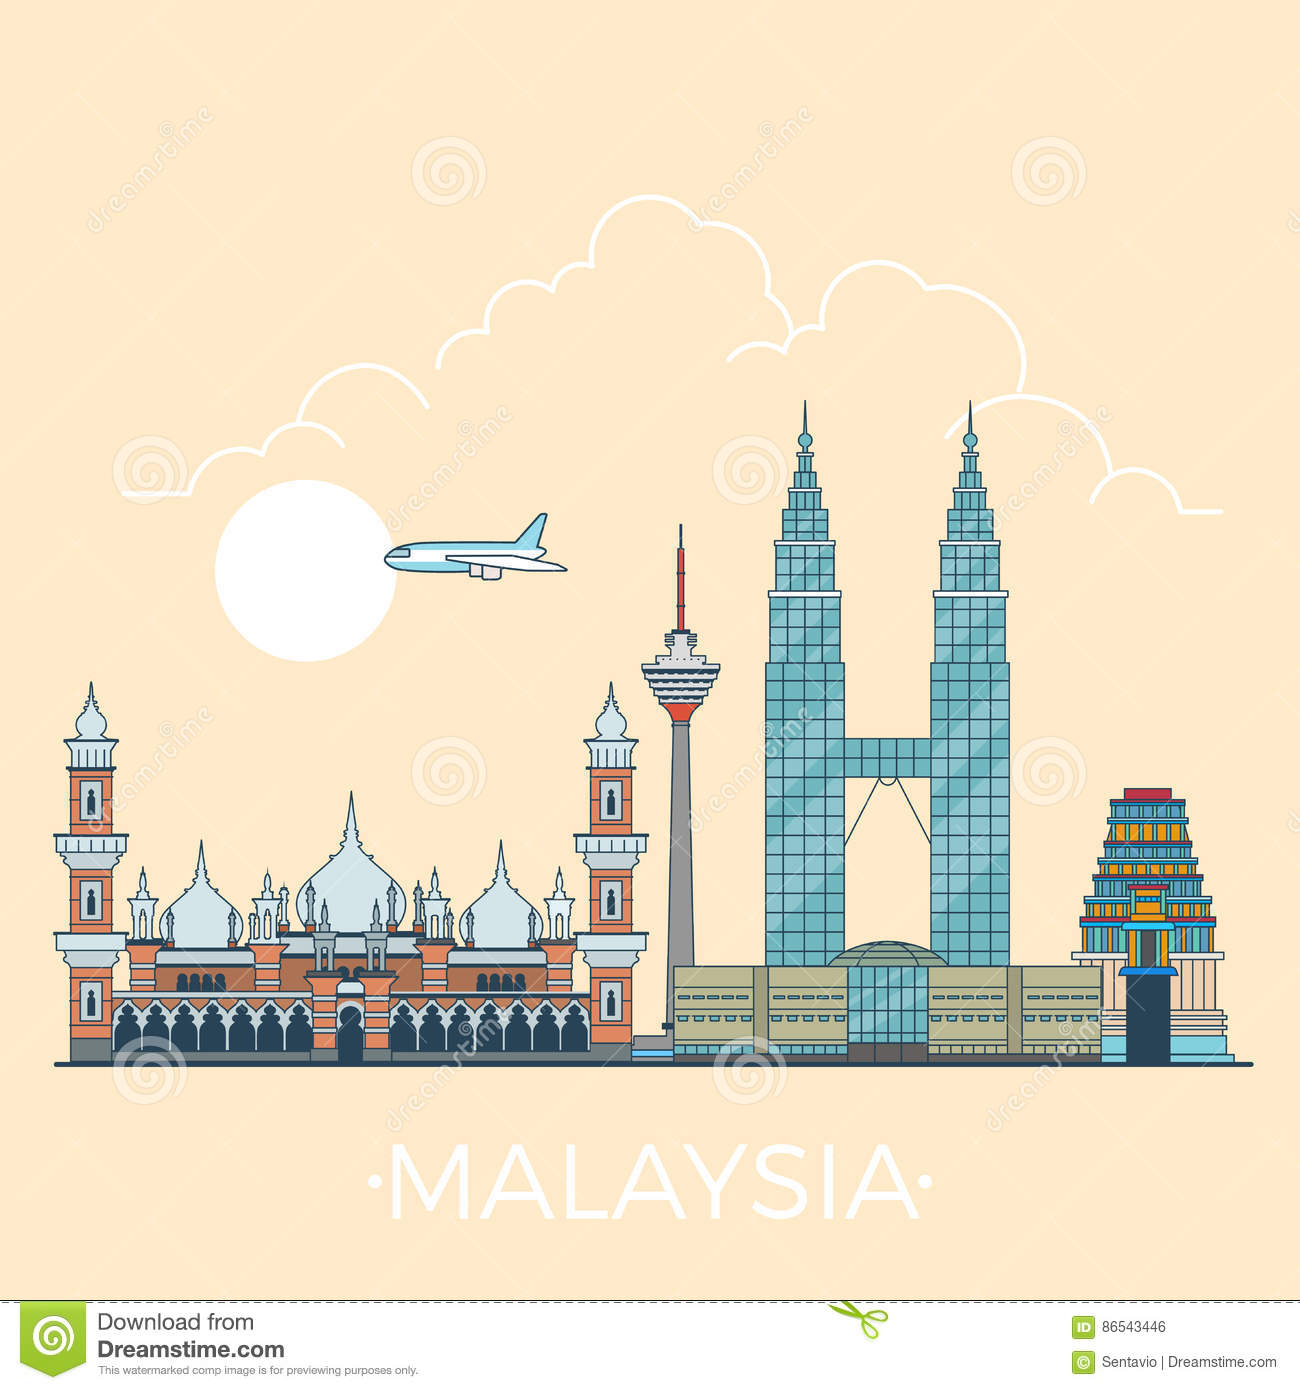 World Travel en diseño plano linear del vector de Malasia